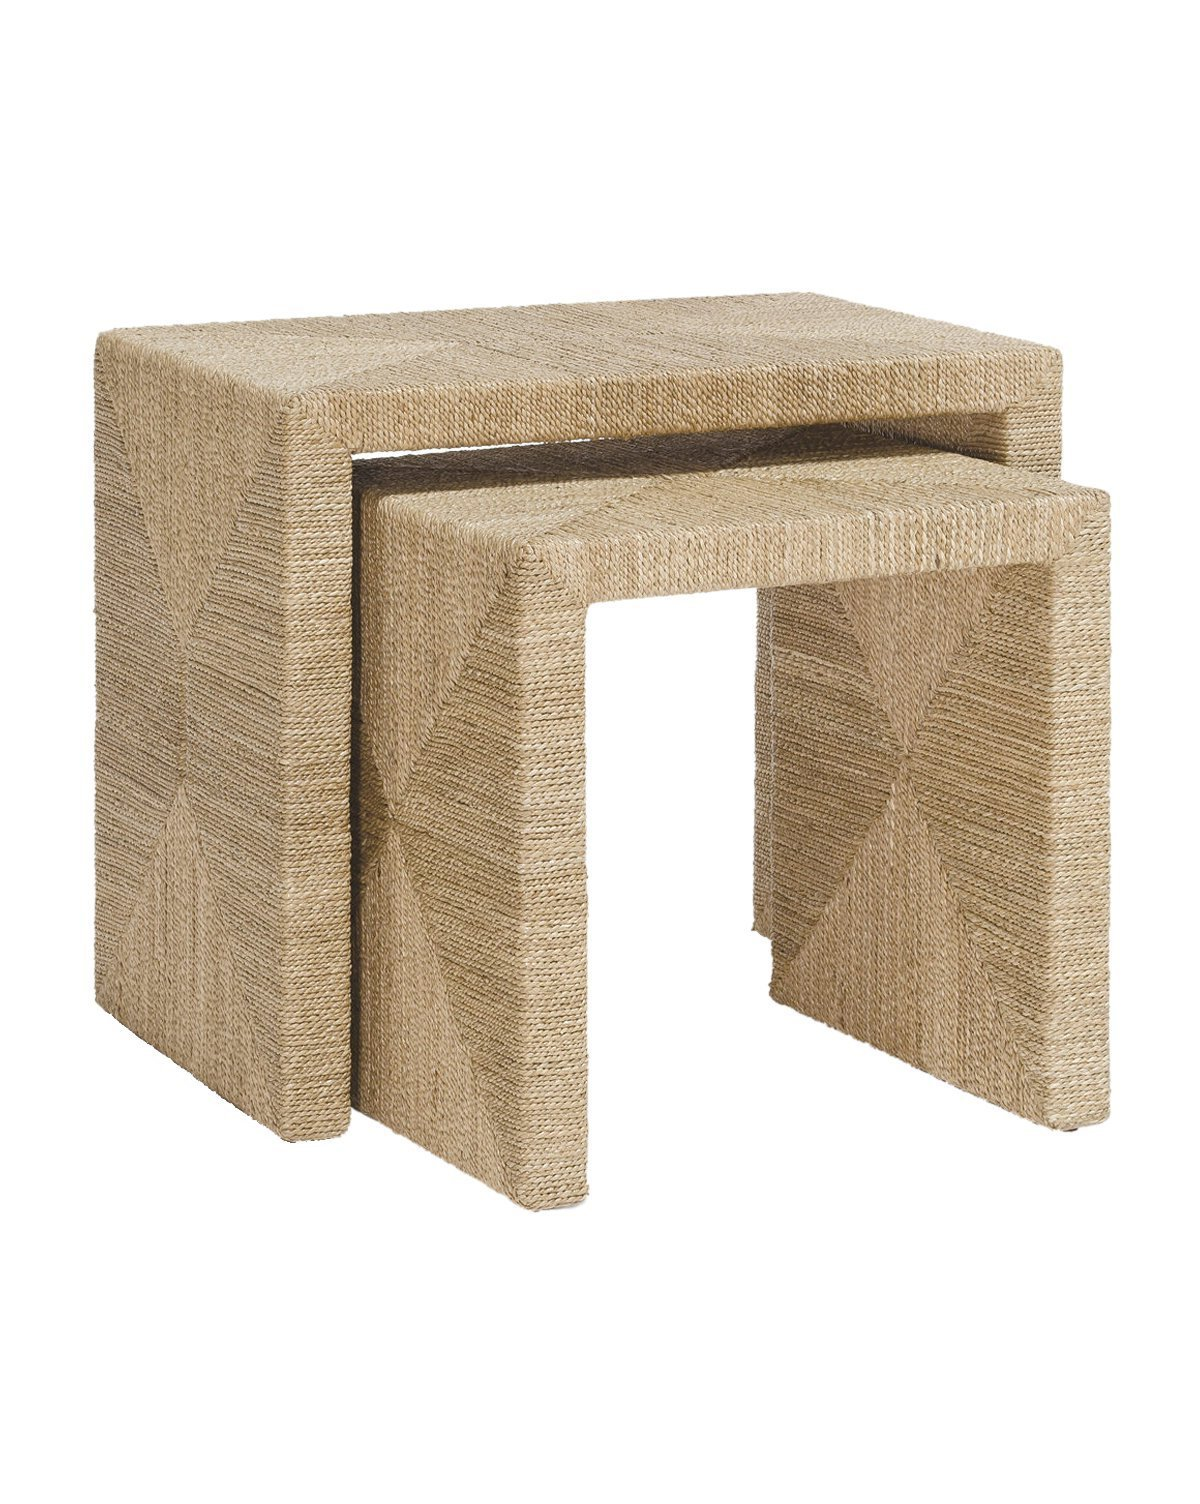 Ellie_Nesting_Tables_1_copy.jpg